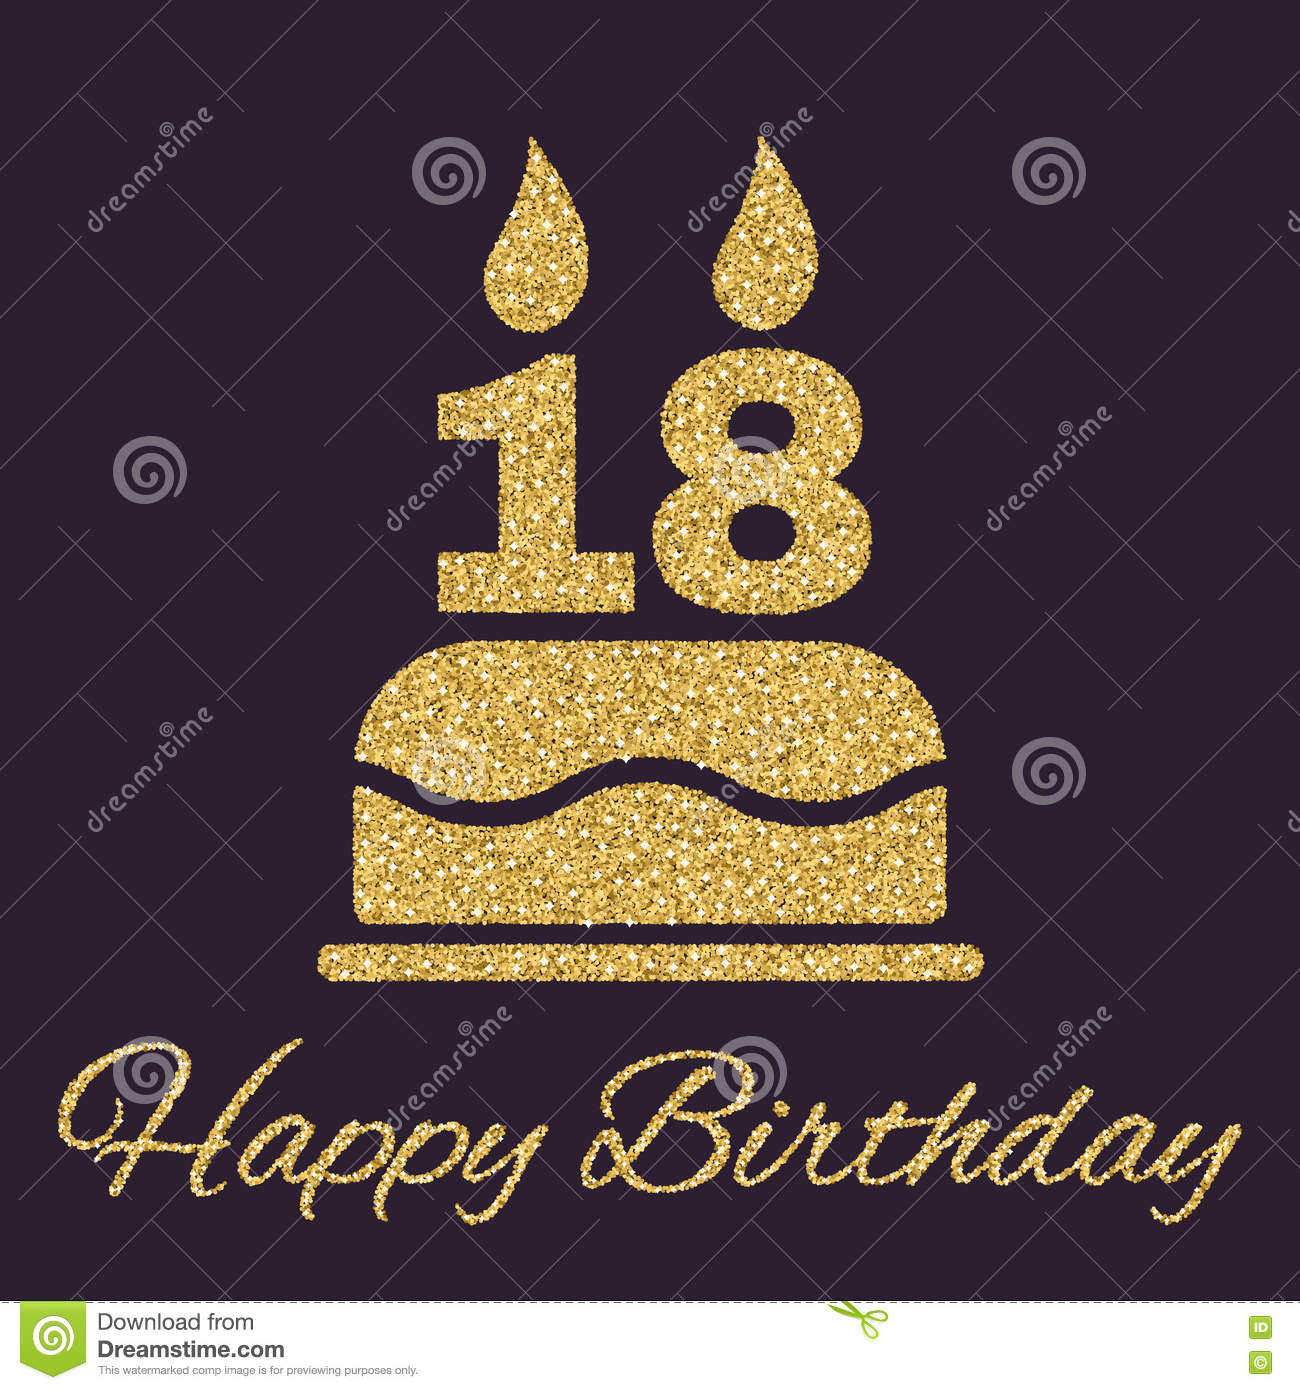 The Birthday Cake With Candles In Form Of Number 18 Icon Symbol Gold Sparkles And Glitter Vector Illustration